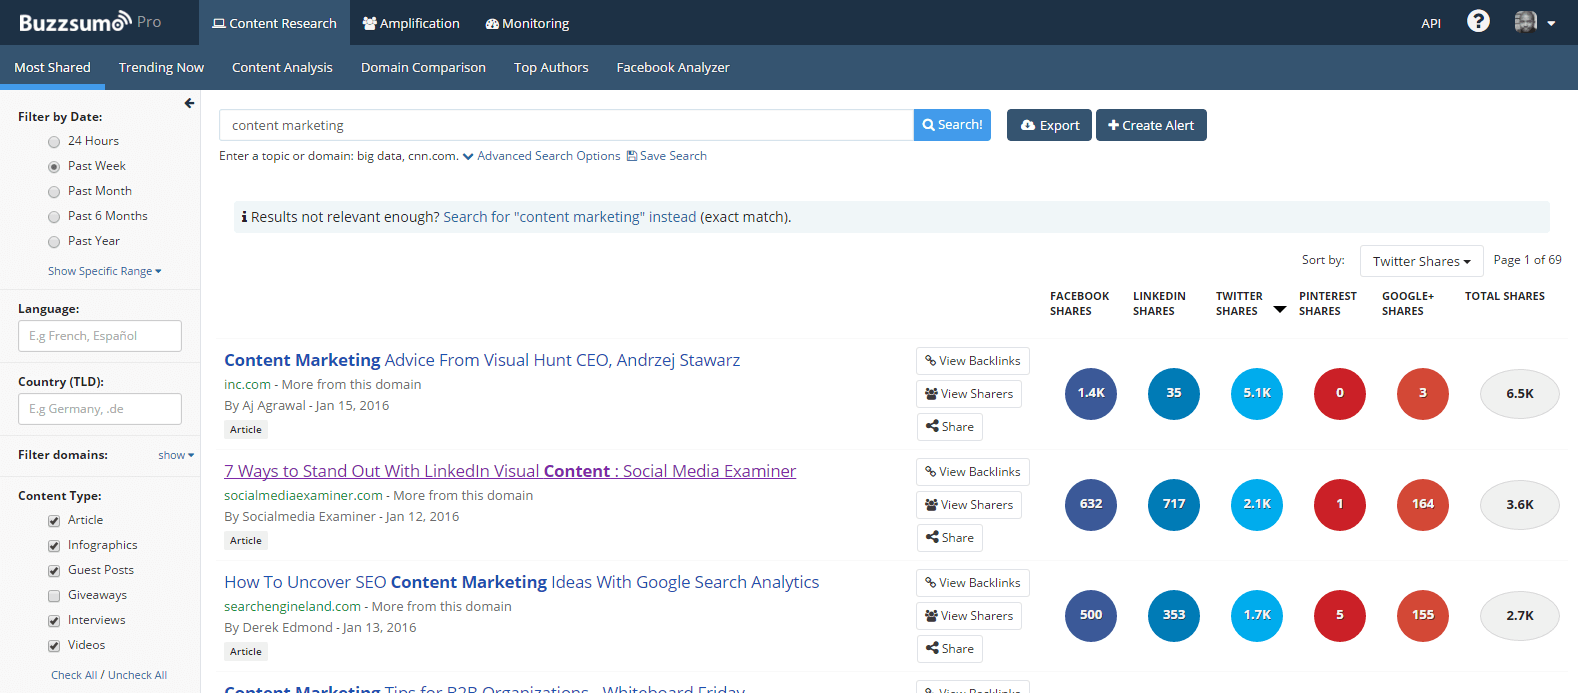 Finding Content With Buzzsumo